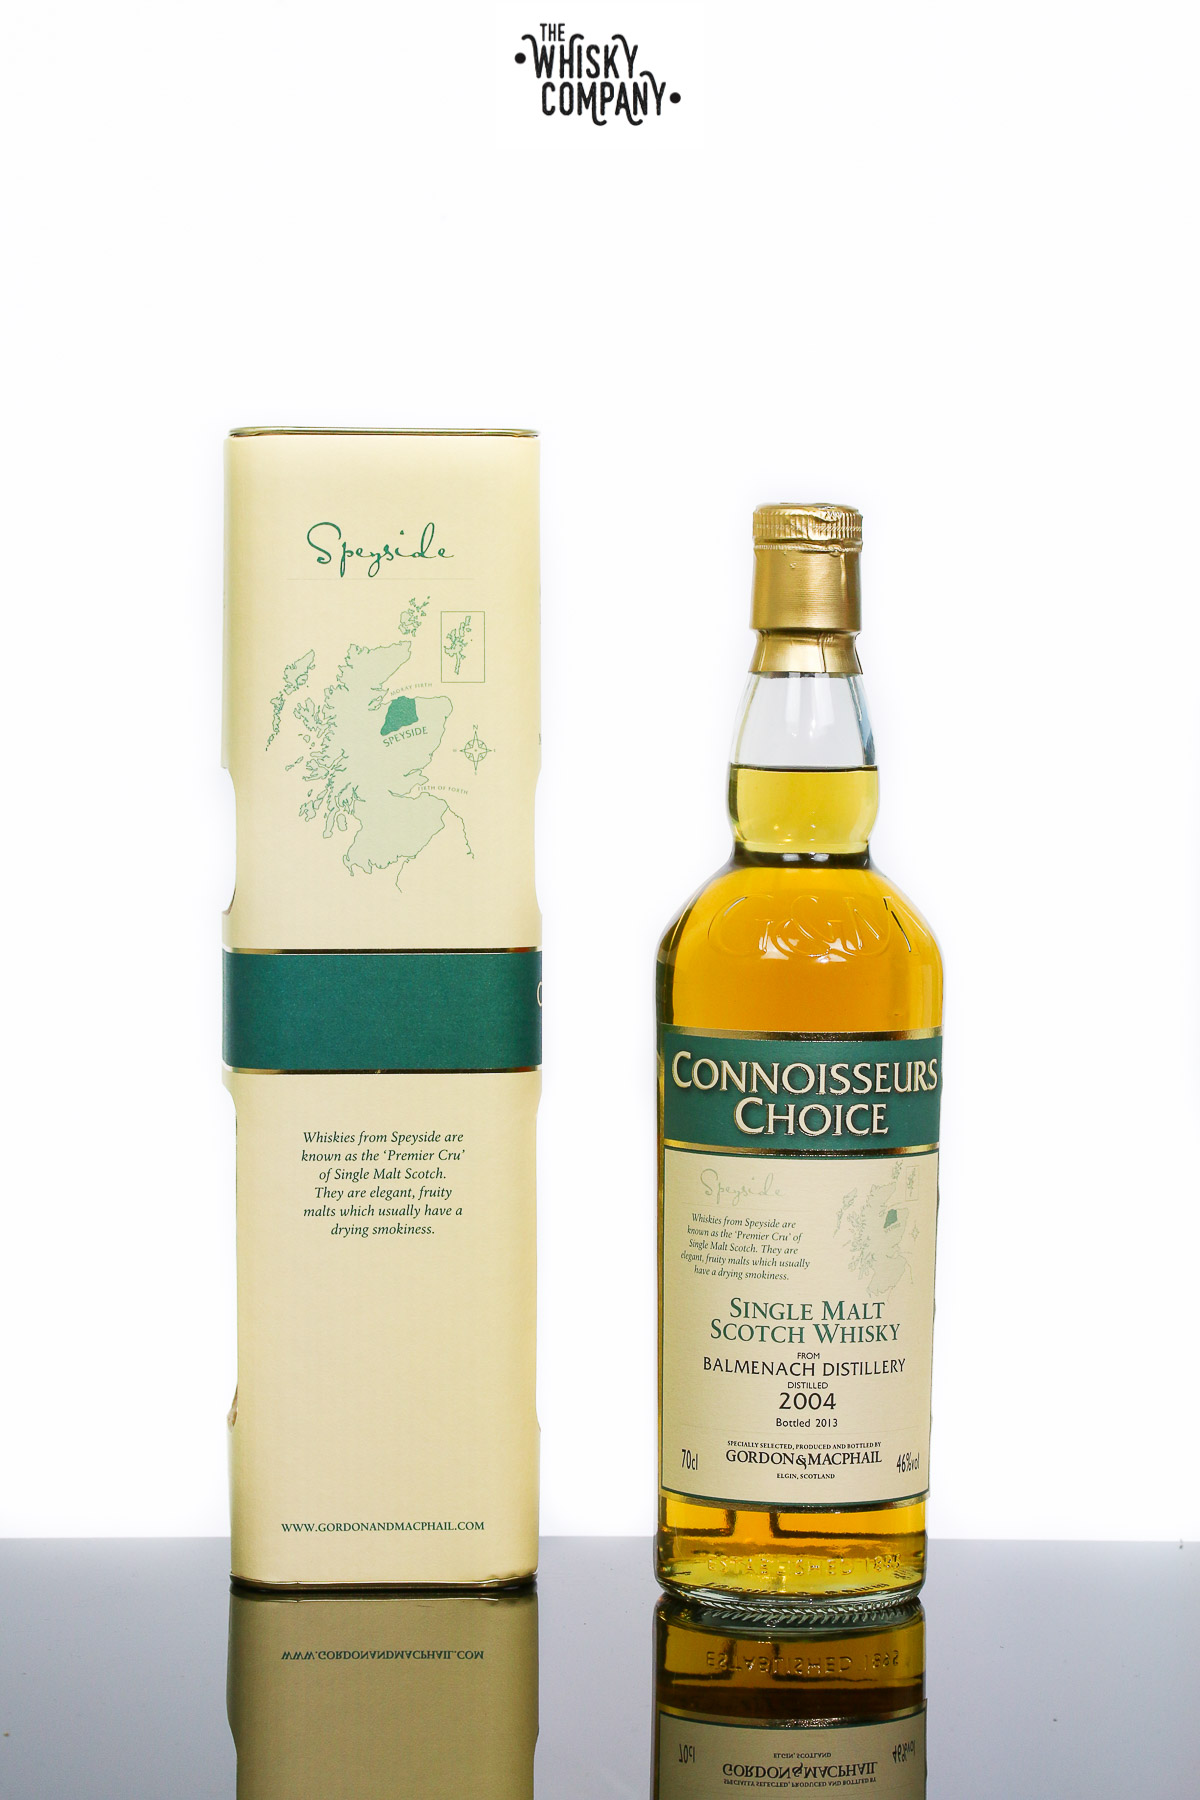 Gordon & MacPhail 2004 Balmenach Speyside Single Malt Scotch Whisky